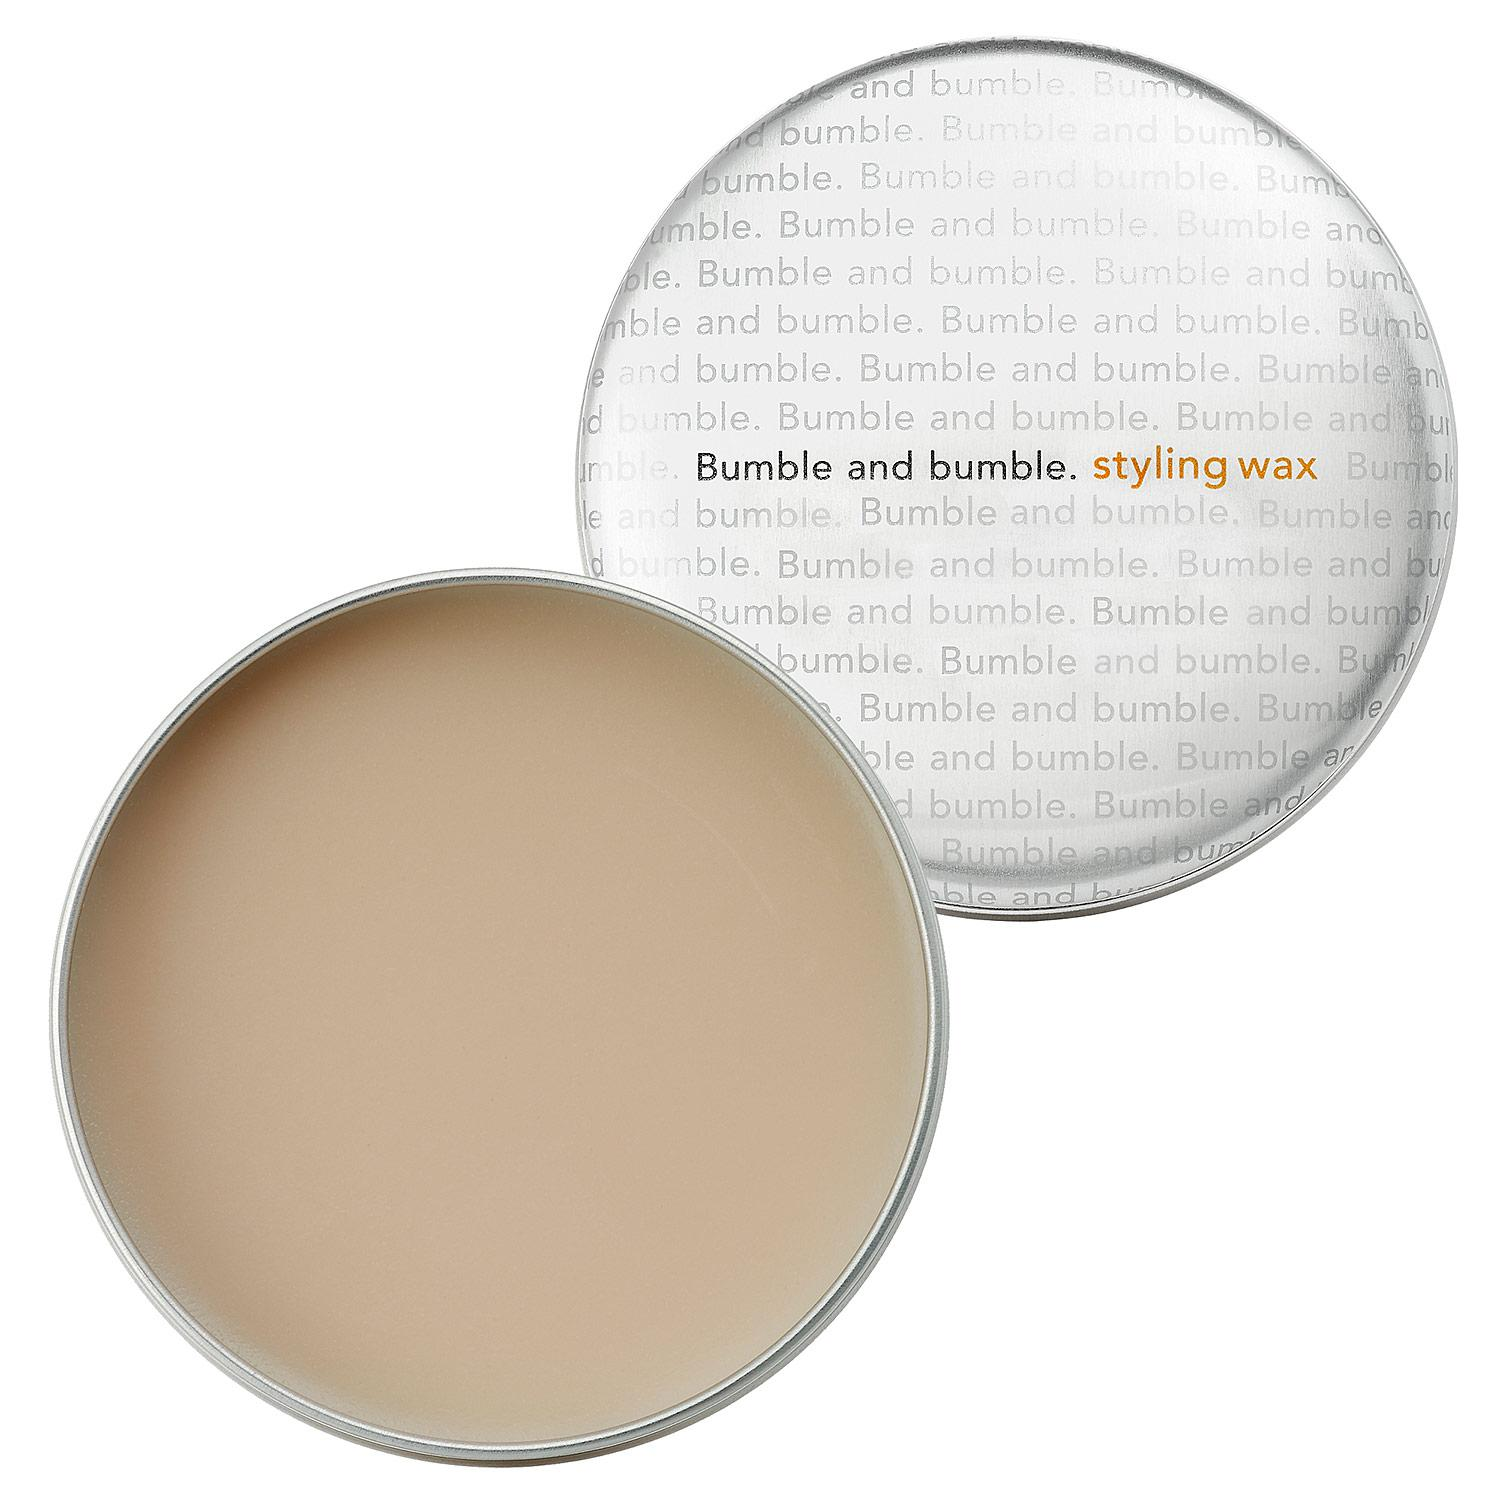 bumble and bumble haircut price bumble and bumble styling wax questions and reviews 3089